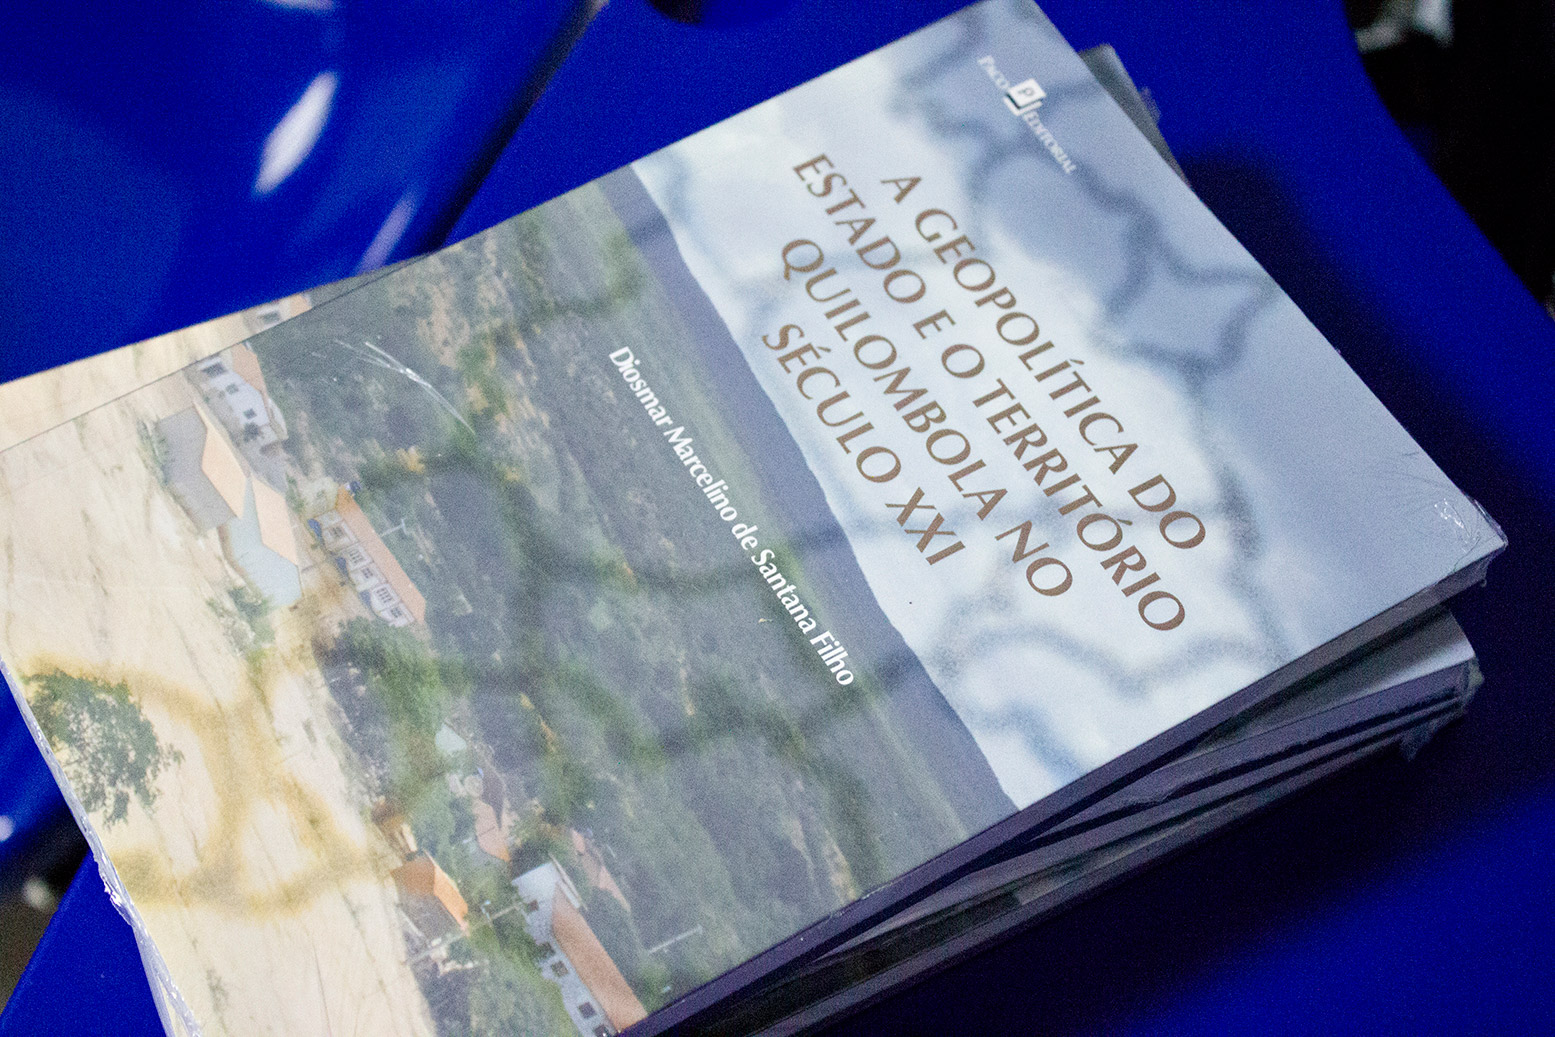 State Geopolitics and Quilombo Territory in the 21st Century, by Diosmar M. Santana